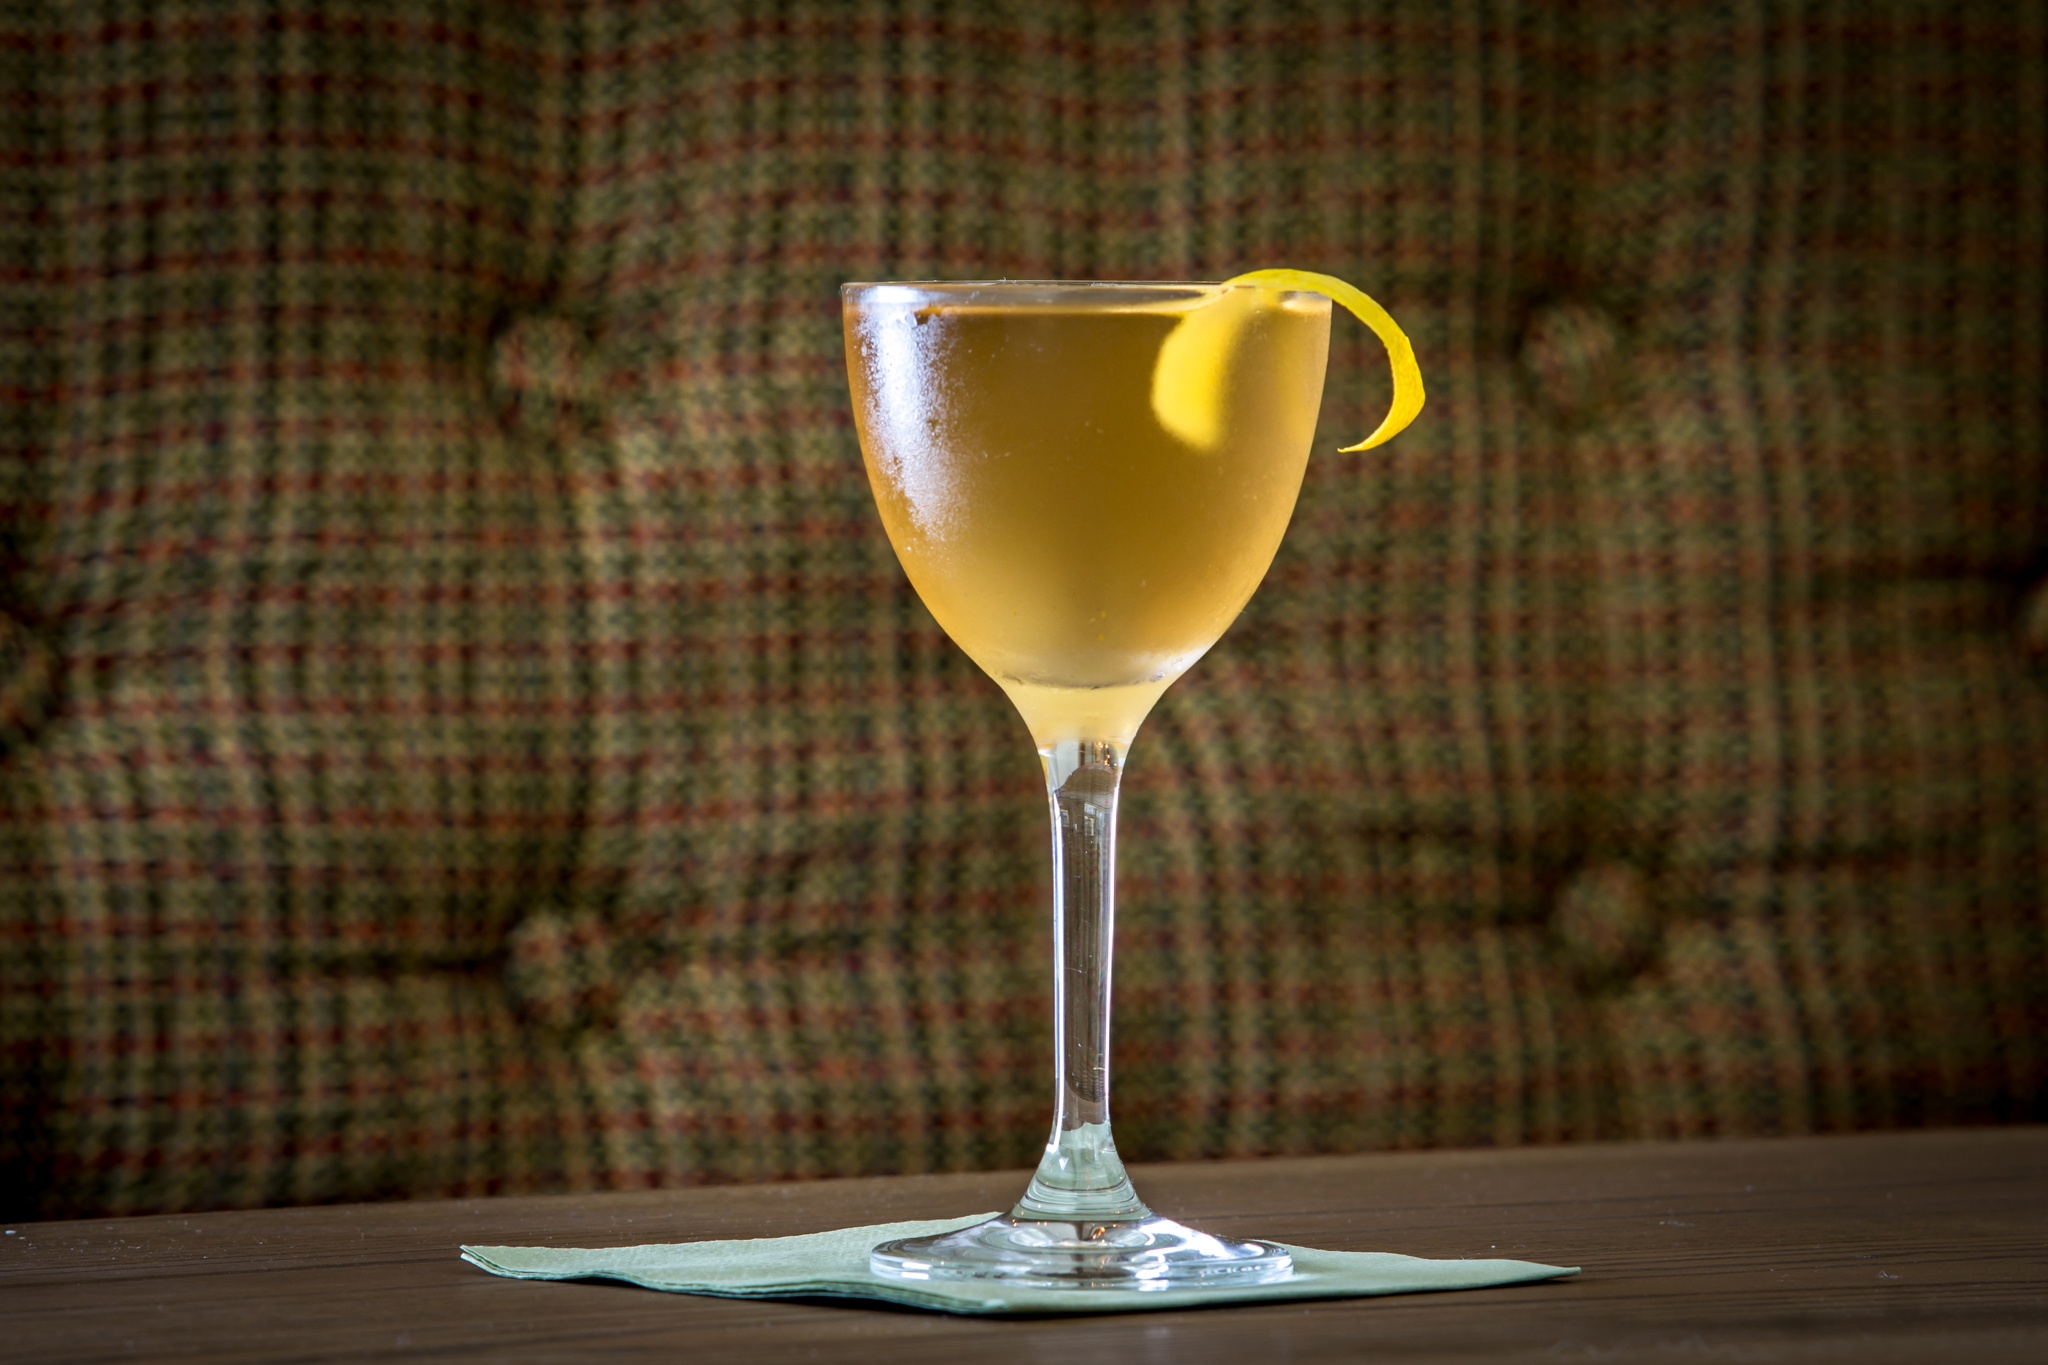 THE GANDER 2 in the Blush Cocktail